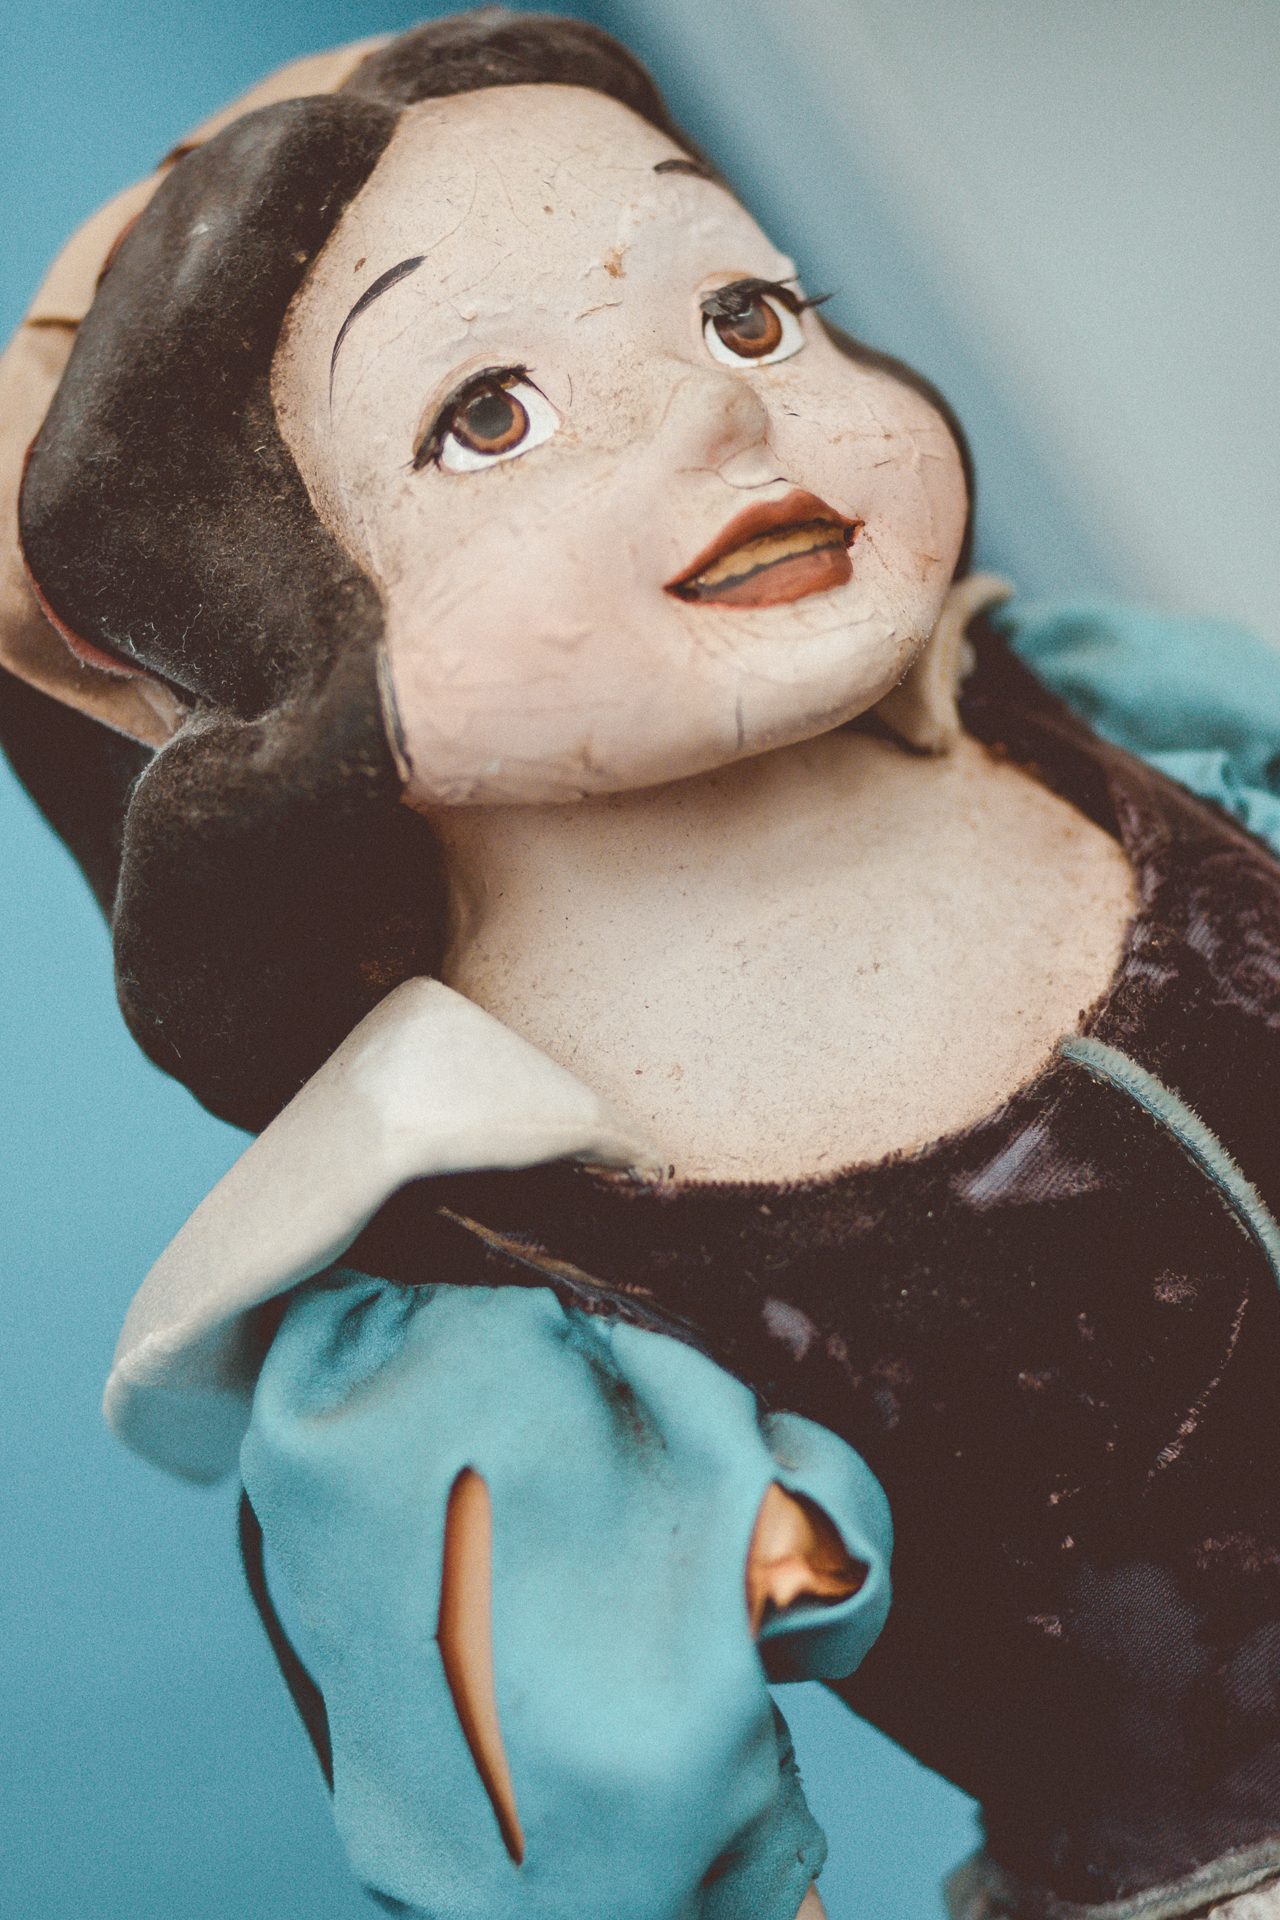 The  iconic  melted Snow White. Don't let her appearance fool you, Snow White is still the fairest of them all for sale at an estimated $500-$700!